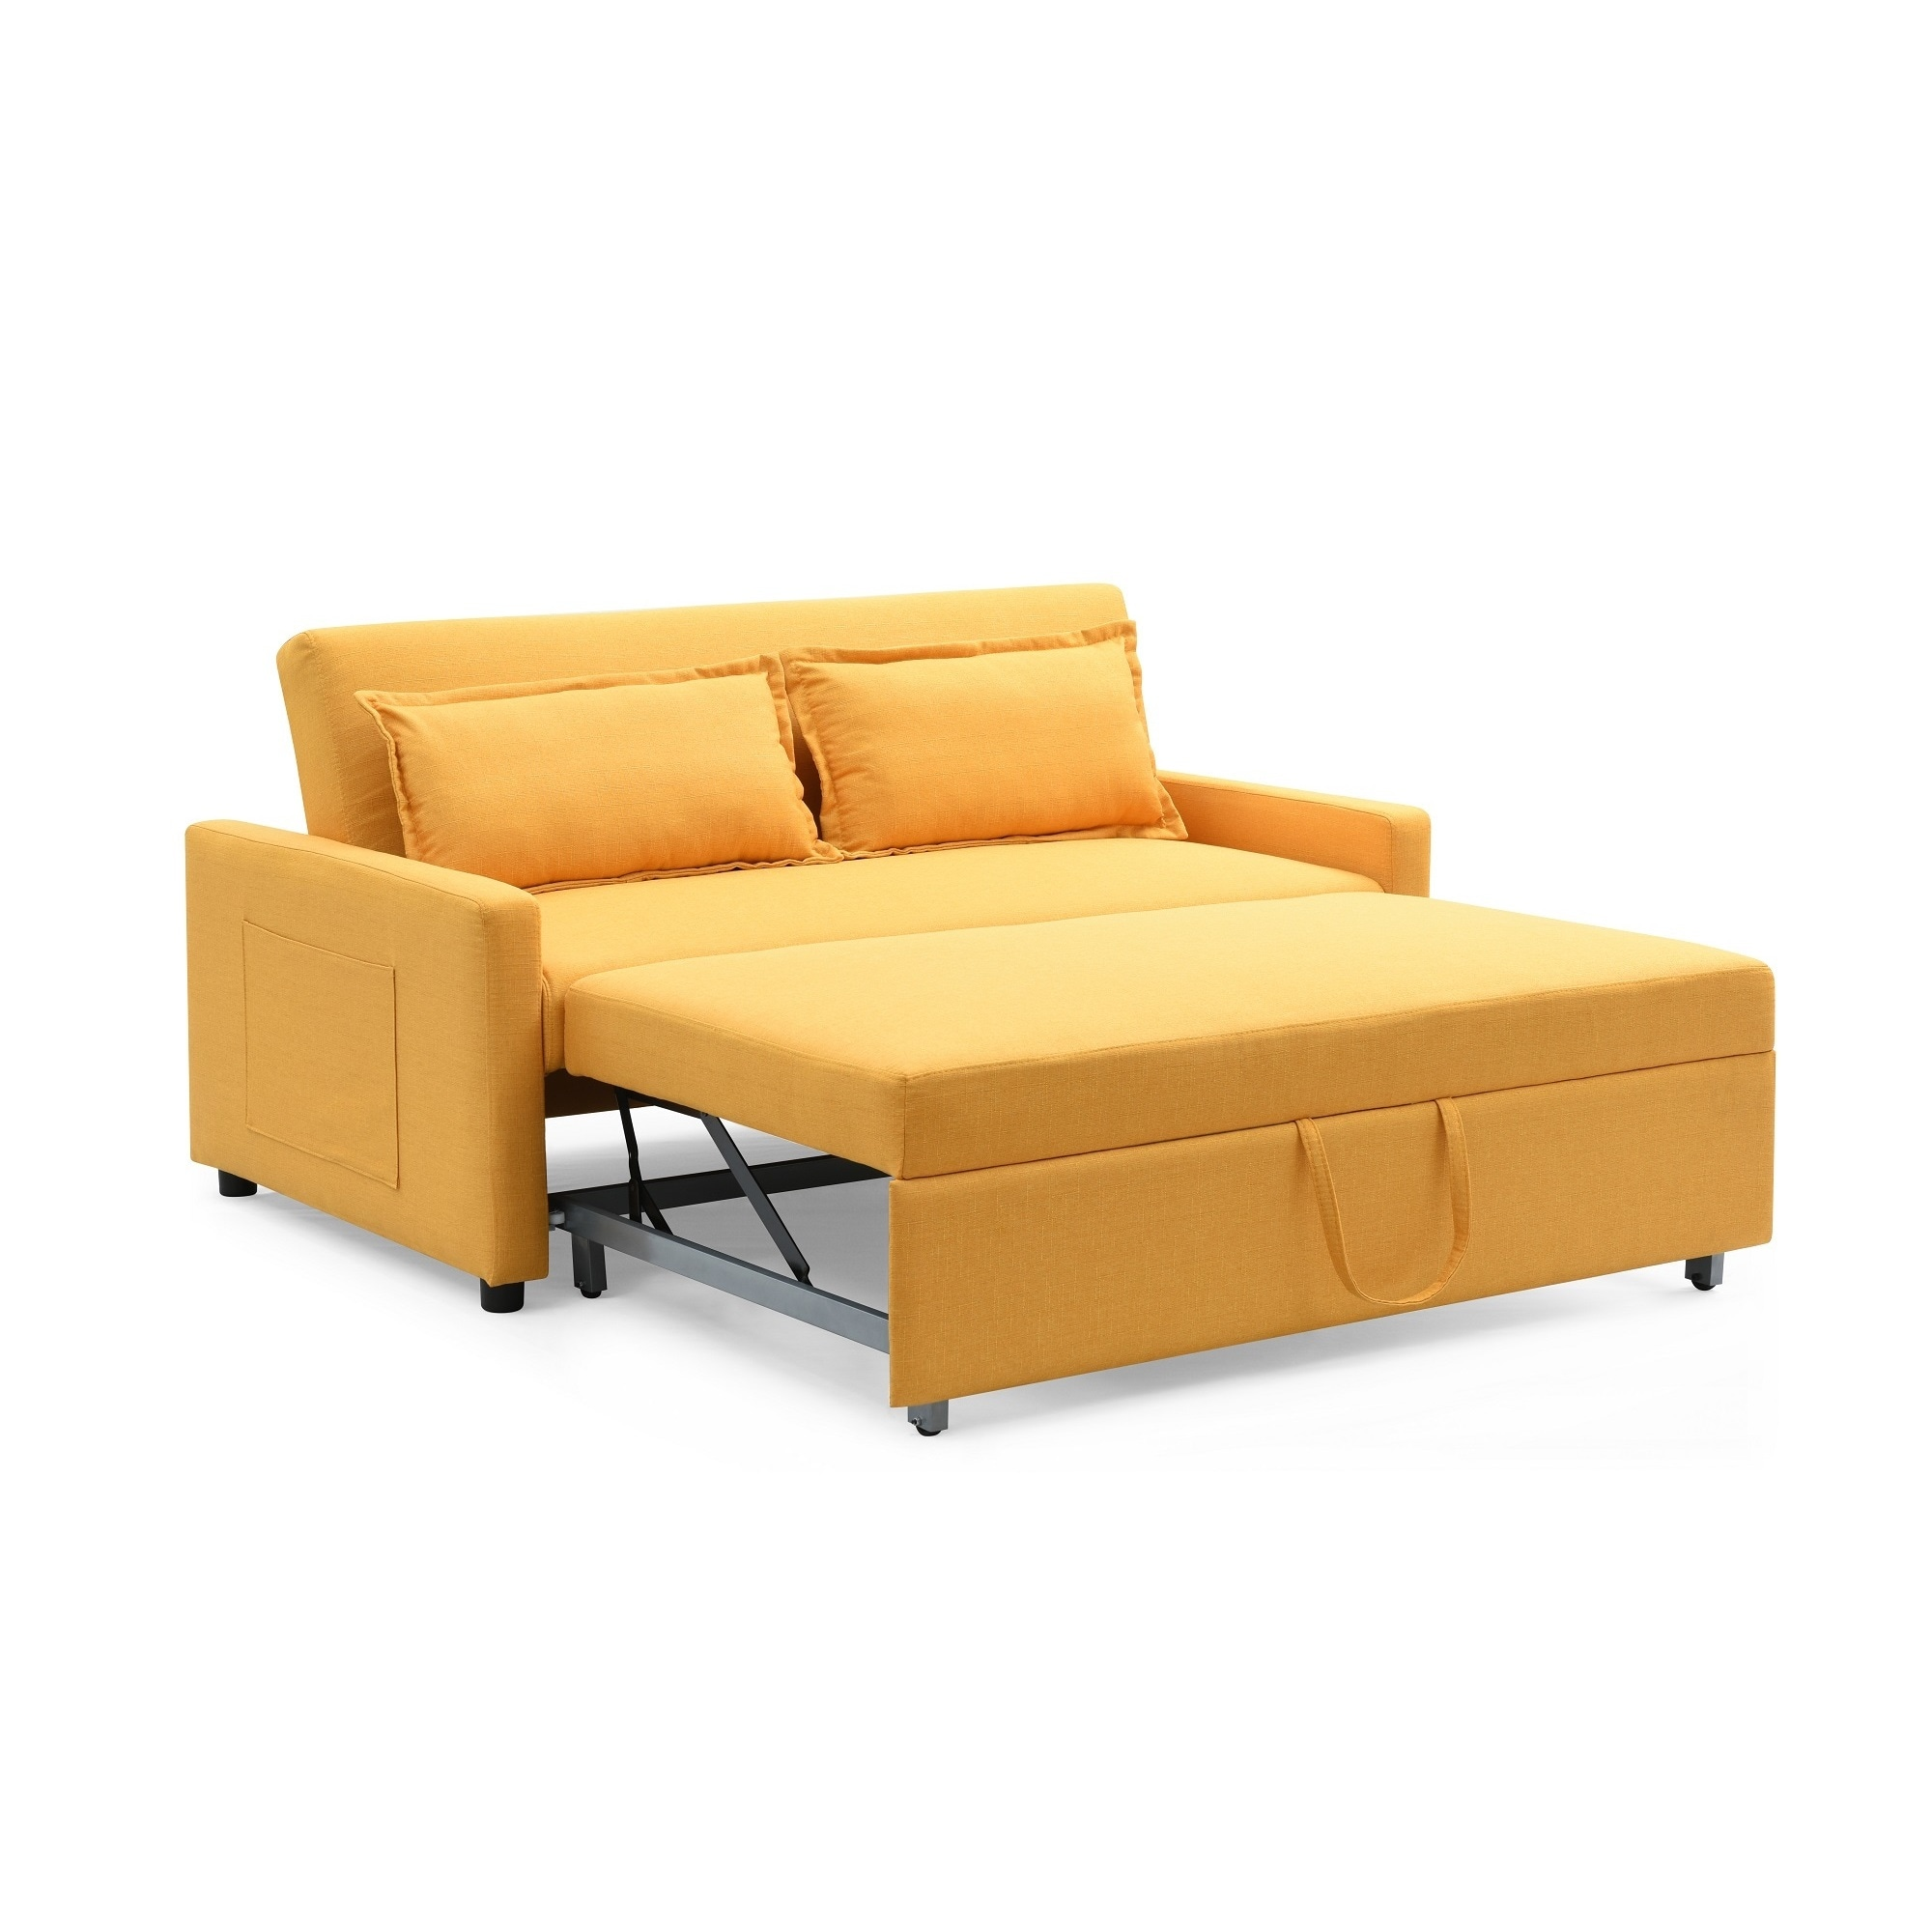 Modern Convertible Sofa with Pullout Bed